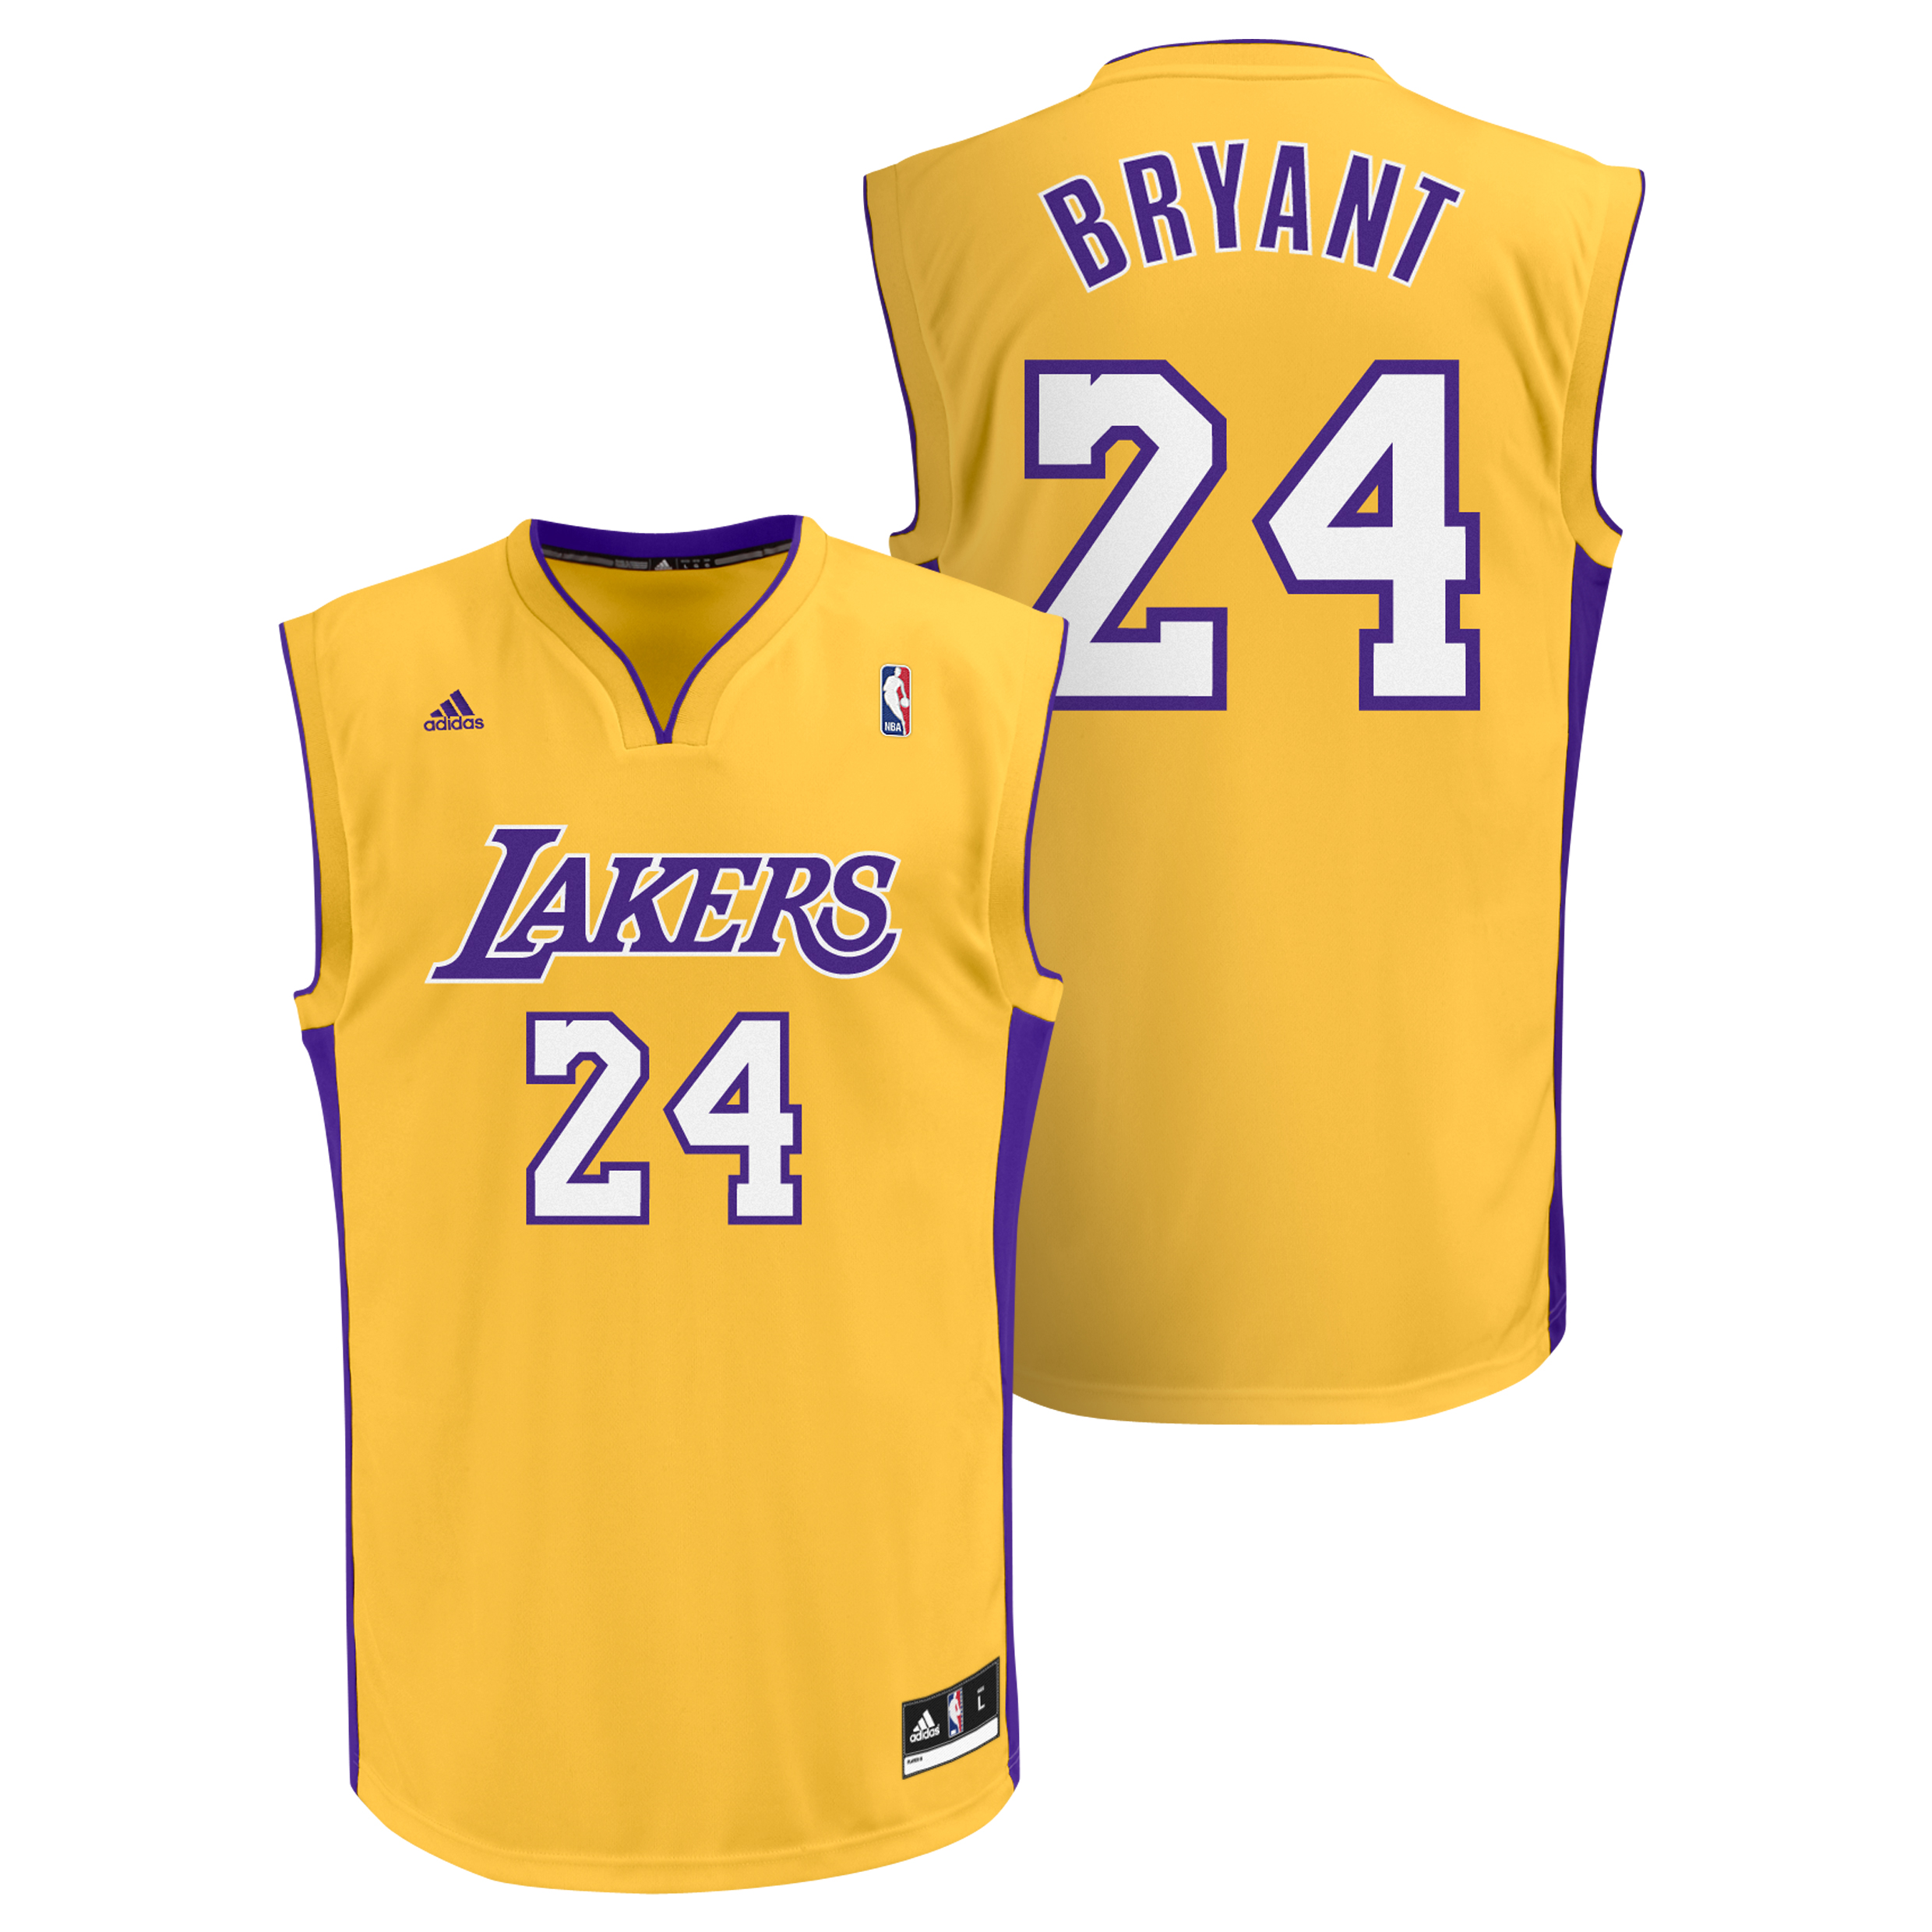 Los Angeles Lakers Home Gold Replica Jersey - Kobe Bryant - Mens